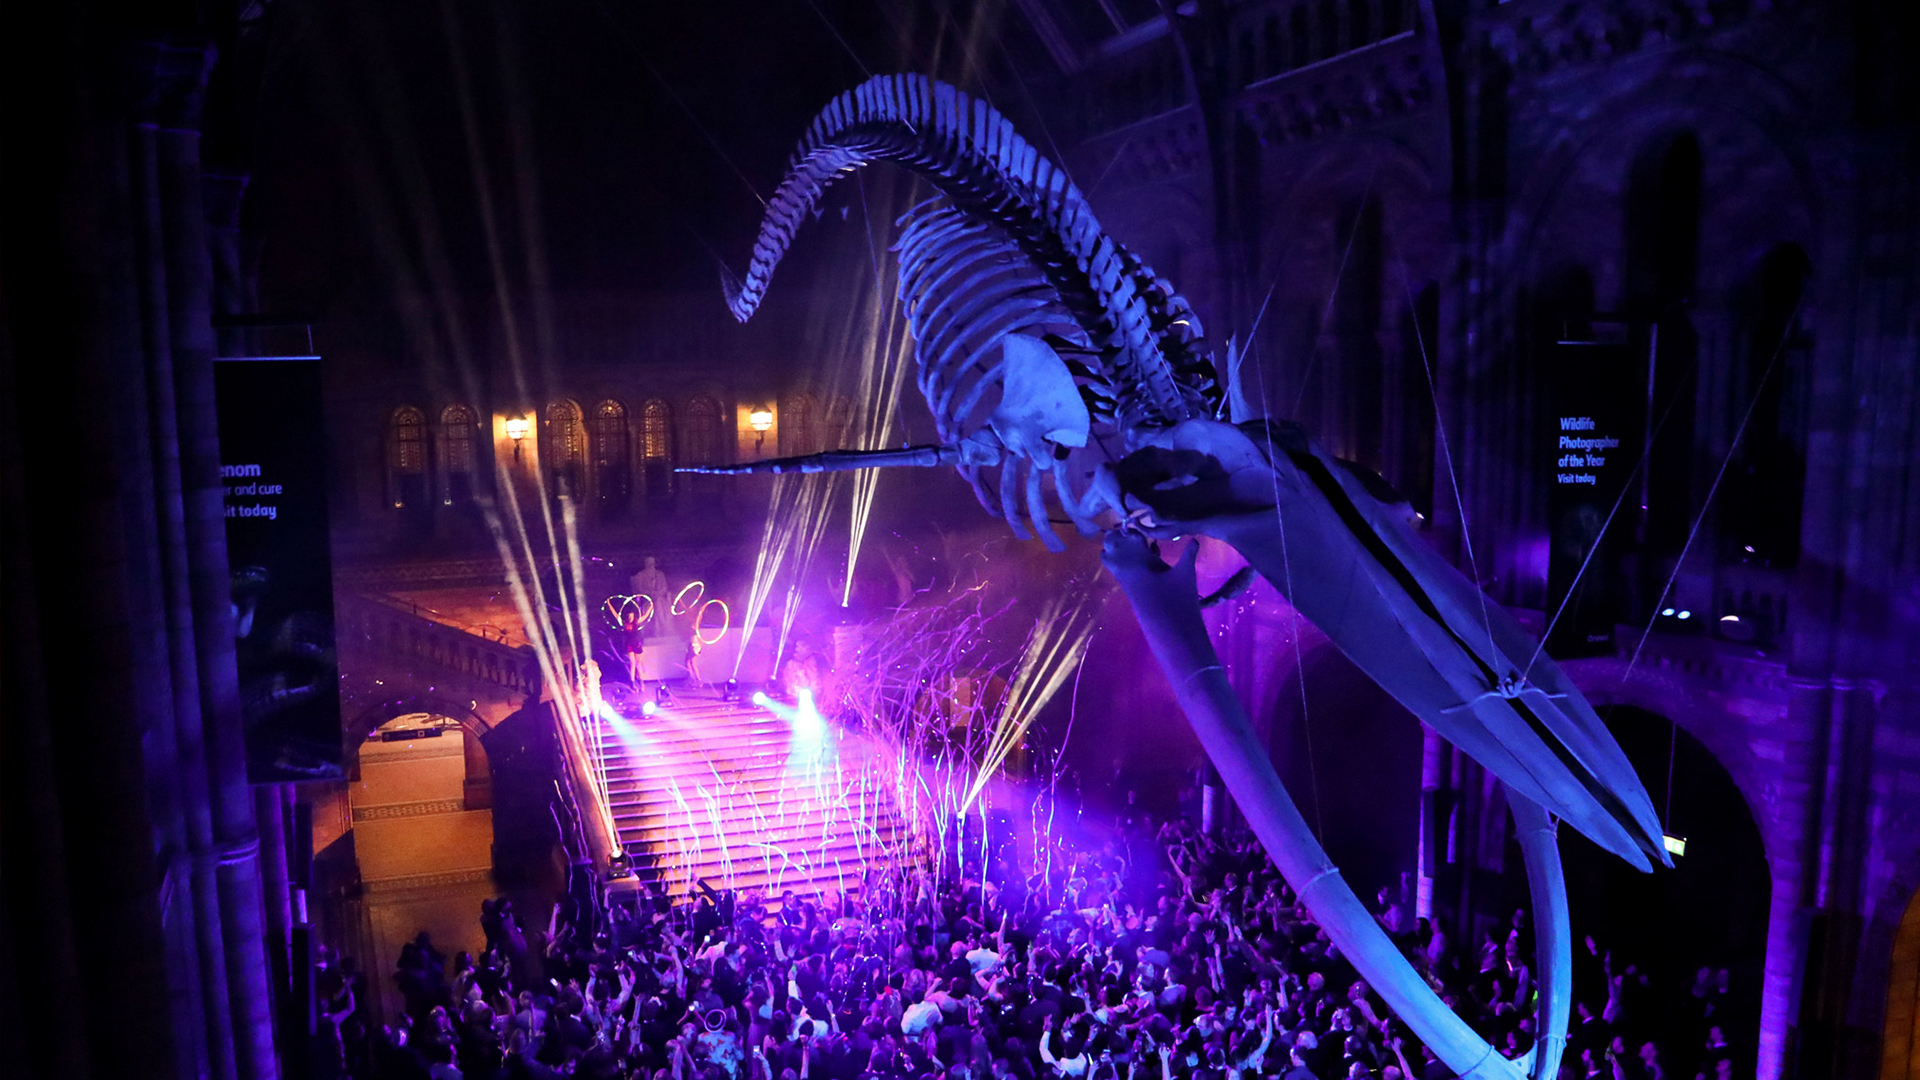 PARTY ANIMALS AT THE NATURAL HISTORY MUSEUM   Looking past Christmas- Who's ready to see in 2019 like a true party animal? Because the Natural History Museum are hosting an unBEARably exciting  shindig , underneath Hope the blue whale skeleton that dominates the entrance hall. Hosted in partnership with events company It's Unknown, there will be musical bingo, some insect canapes, a silent disco, animal themed activities, DJ, band, massaoke (big hits all sung by the crowd), plentiful drinks and basically a roarly good knees up. You can dress up all shmancy but with some elegant animal touches to fit in with the theme and explore the exhibitions on the night too if the massaoke is getting a little too loud. Tickets are from £89 and the evening kicks off at 8pm leaving you 4 hours of escapades before the clocks strike midnight. All is set to be a WILD night….we're not lion about that!  Facebook  |  Instagram  |  Twitter